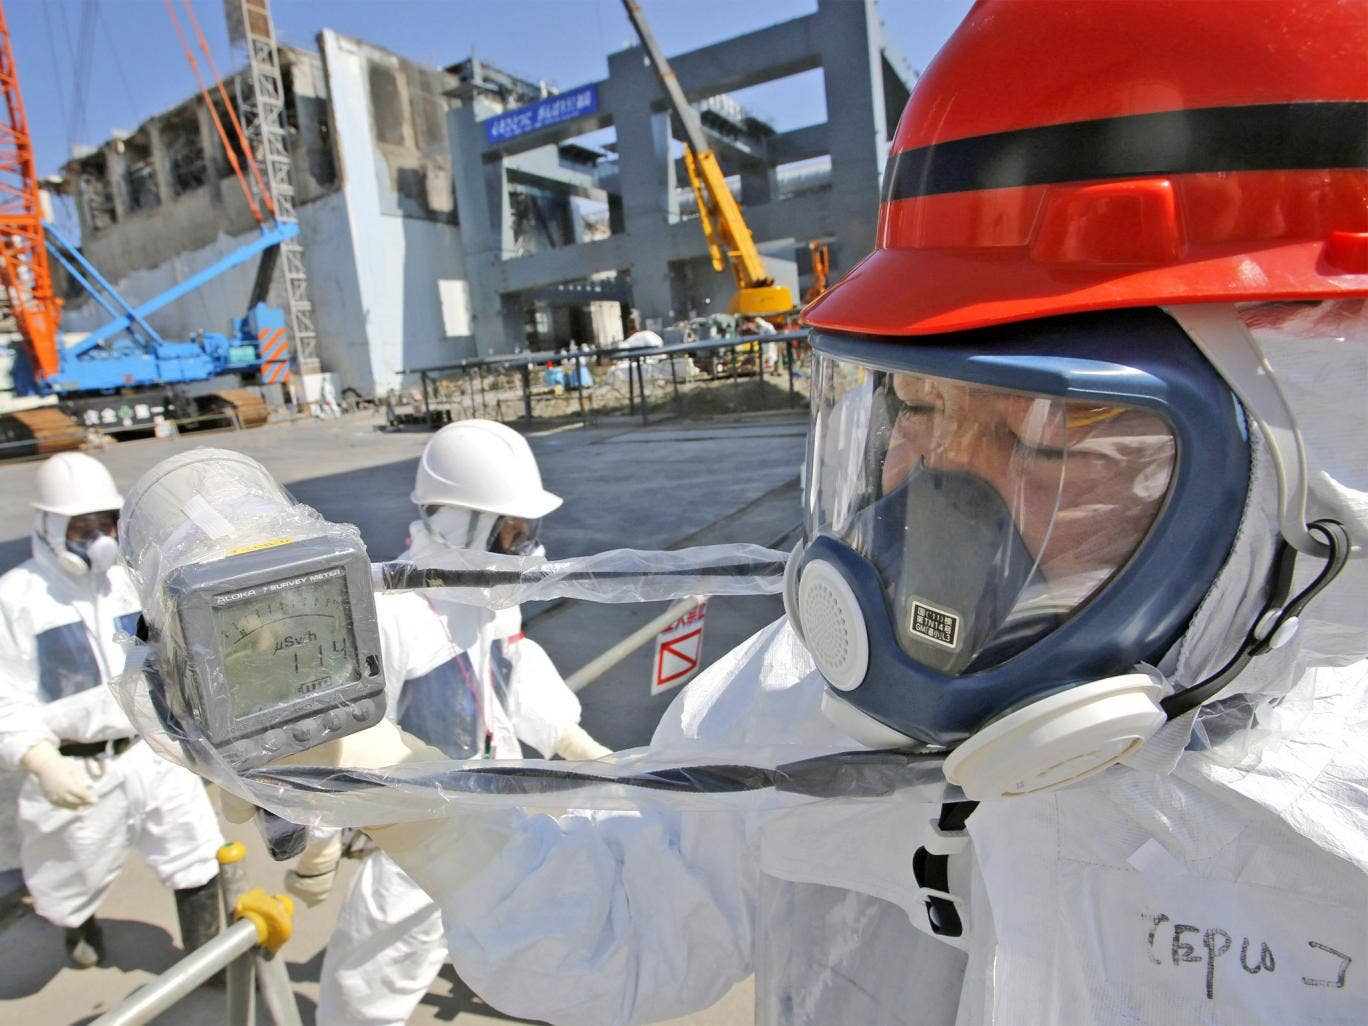 A radiation monitor indicates 114 microsieverts per hour near the building housing Fukushima's reactor unit four